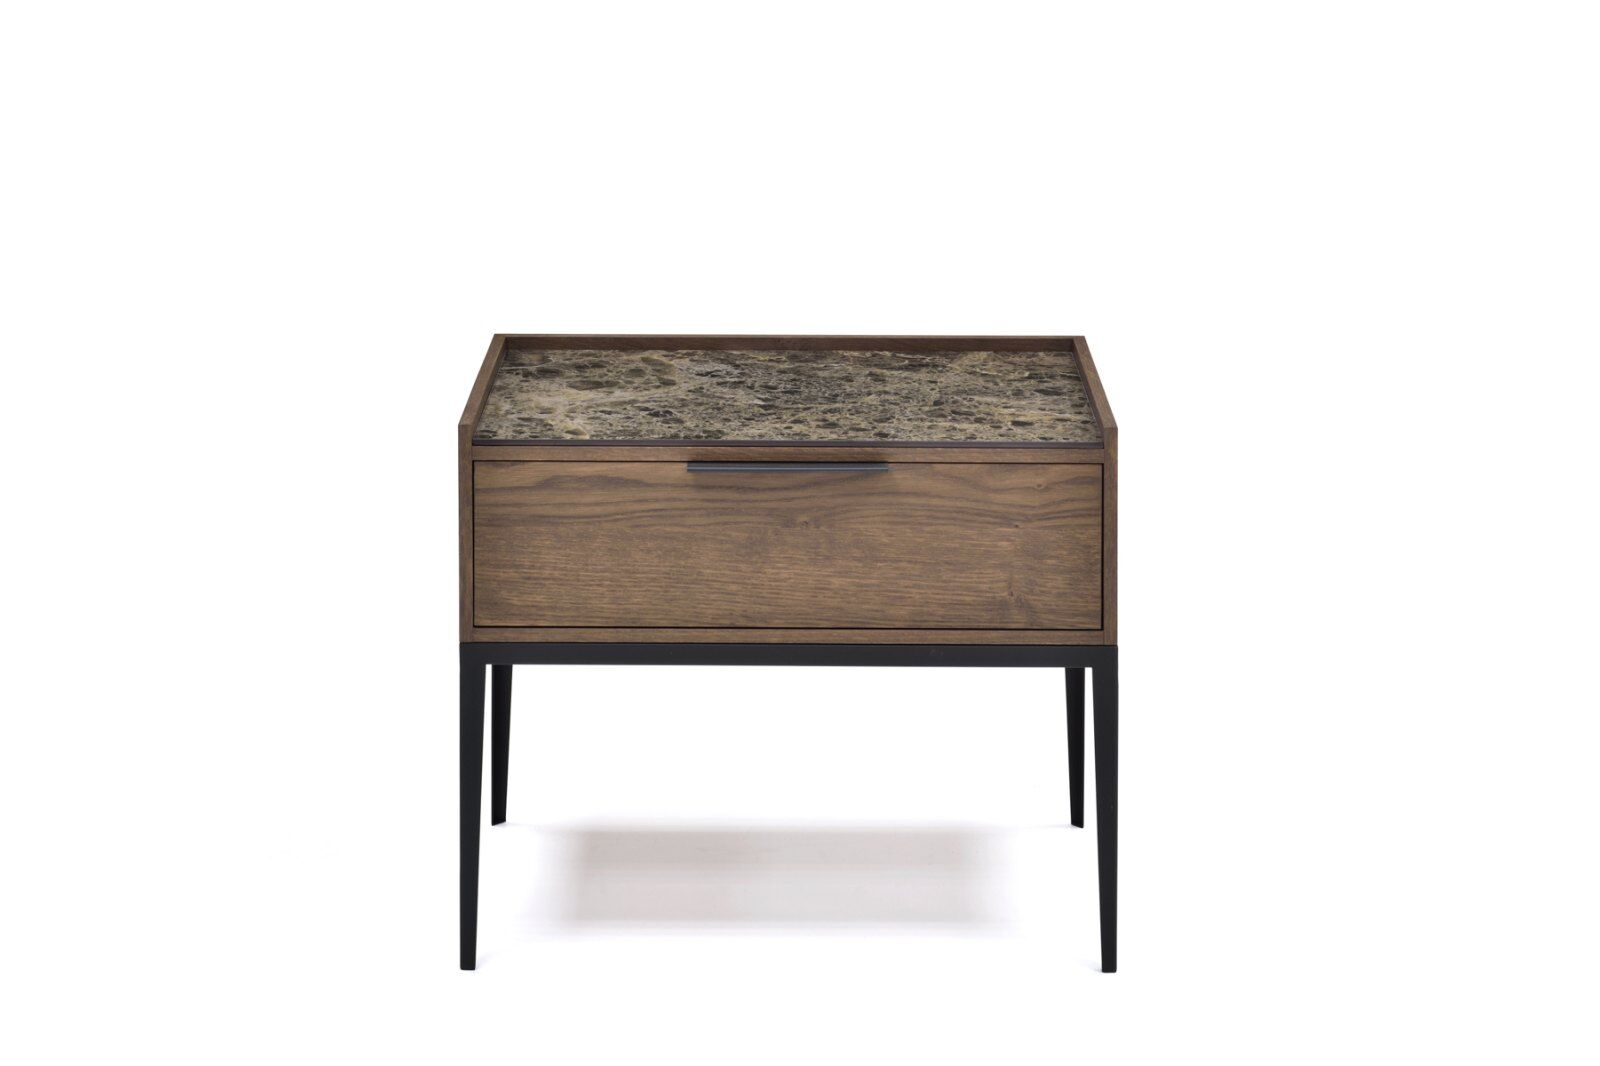 Moli Marble-effect Top Bedside Table 50cm  / 1